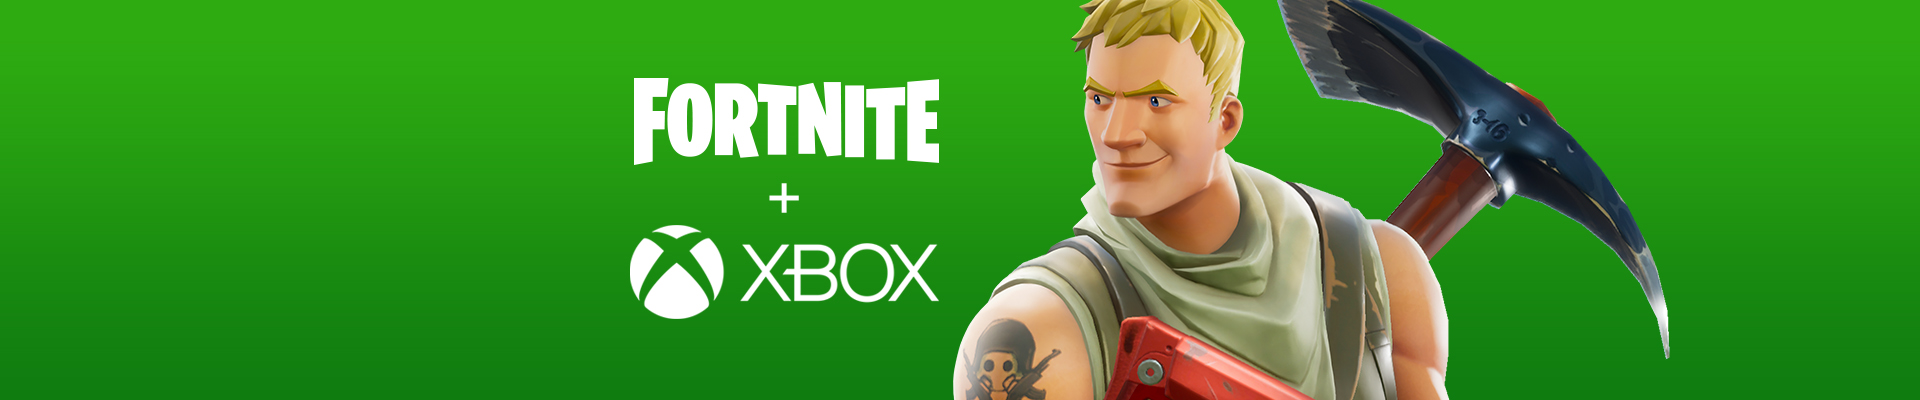 Fortnite Cross Platform on Xbox One